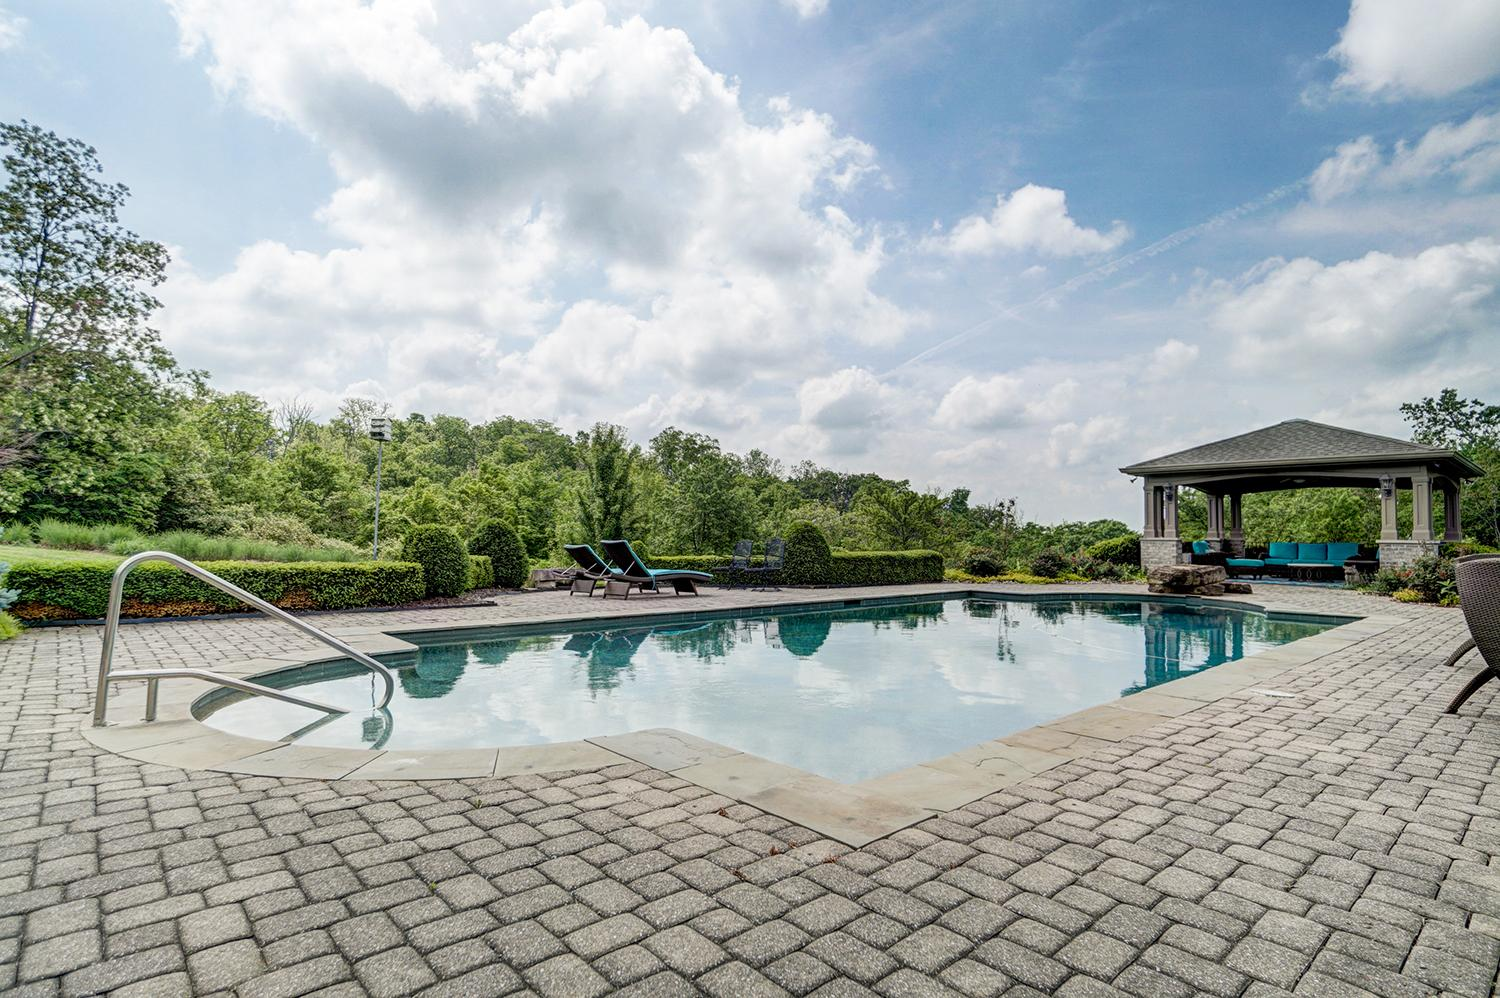 4905 Taft Place is a 5-bedroom, 10 bathroom (7 full and 3 half) home in Indian Hill. It's currently on the market for $3,950,000. / Image: Wow Video Tours // Published: 6.8.18